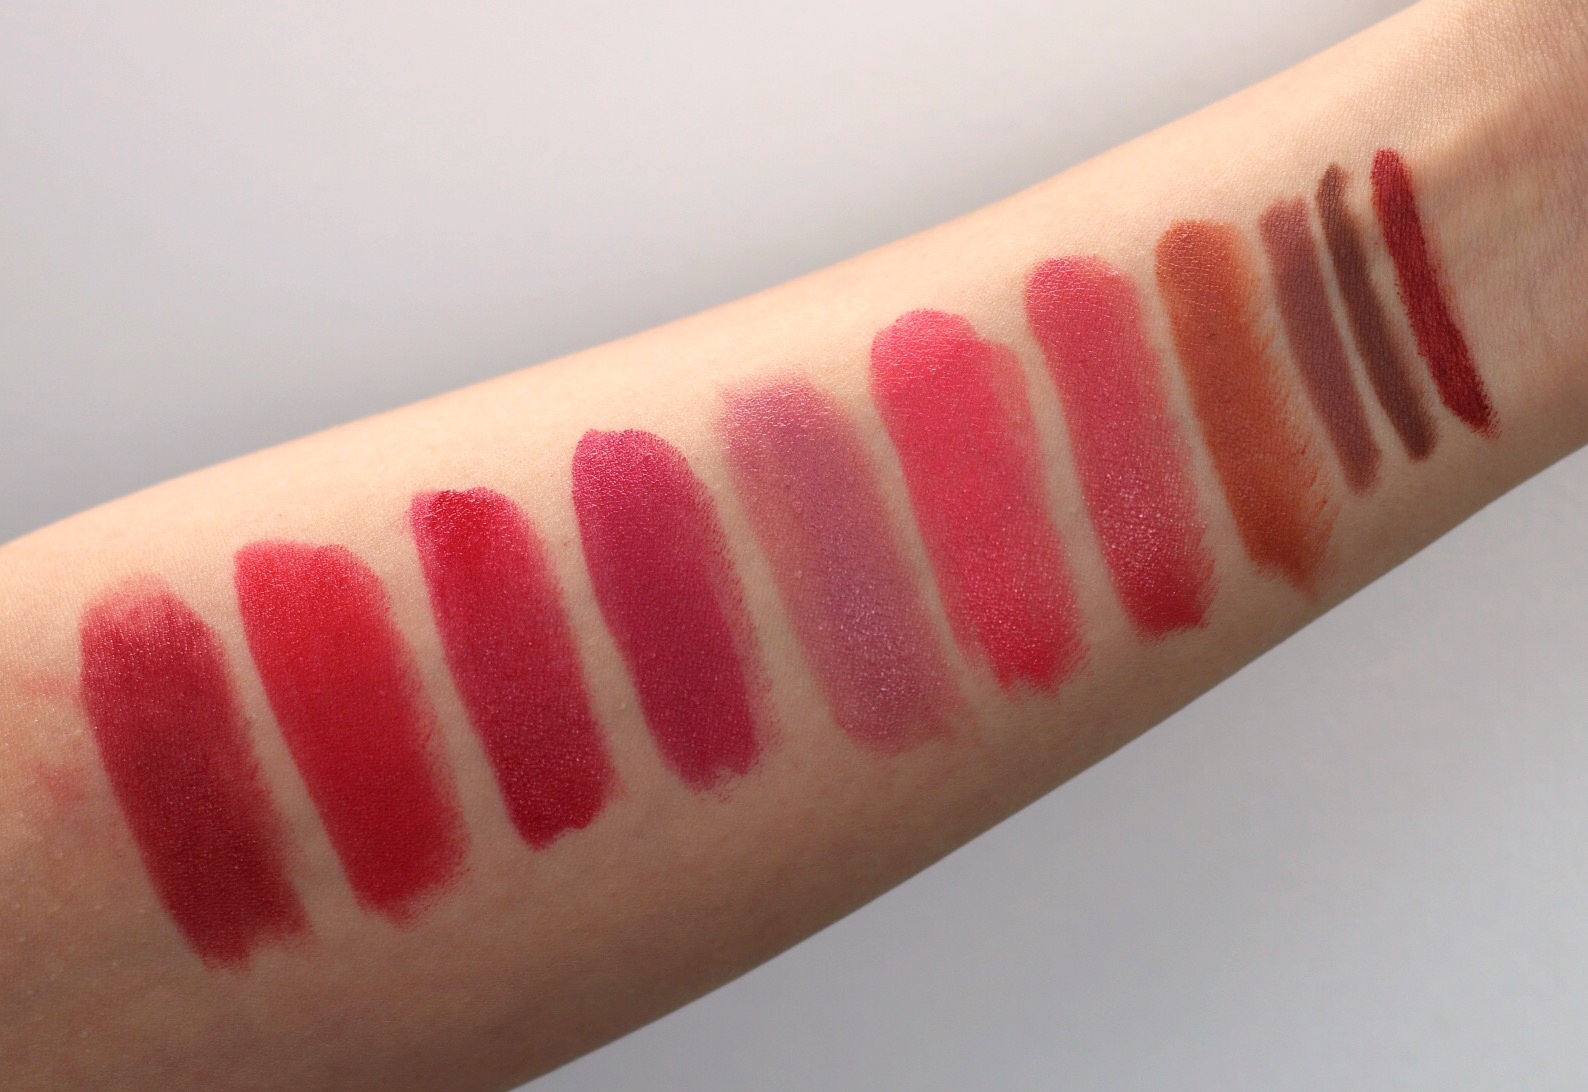 (L-R) VAPOUR:COURAGE,REAL PURITY: CLOVER RED,SANTE:NO.23,REAL PURITY: DEWBERRY,VAPOUR: PURR,REAL PURITY: ROSE,SANTE: NO.21,VMV HYPOALLERGENICS: GILDA,JANE IREDALE: SPICE,JANE IREDALE: NUDE,AND ZOSIMOS BOTANICALS: GARNET.